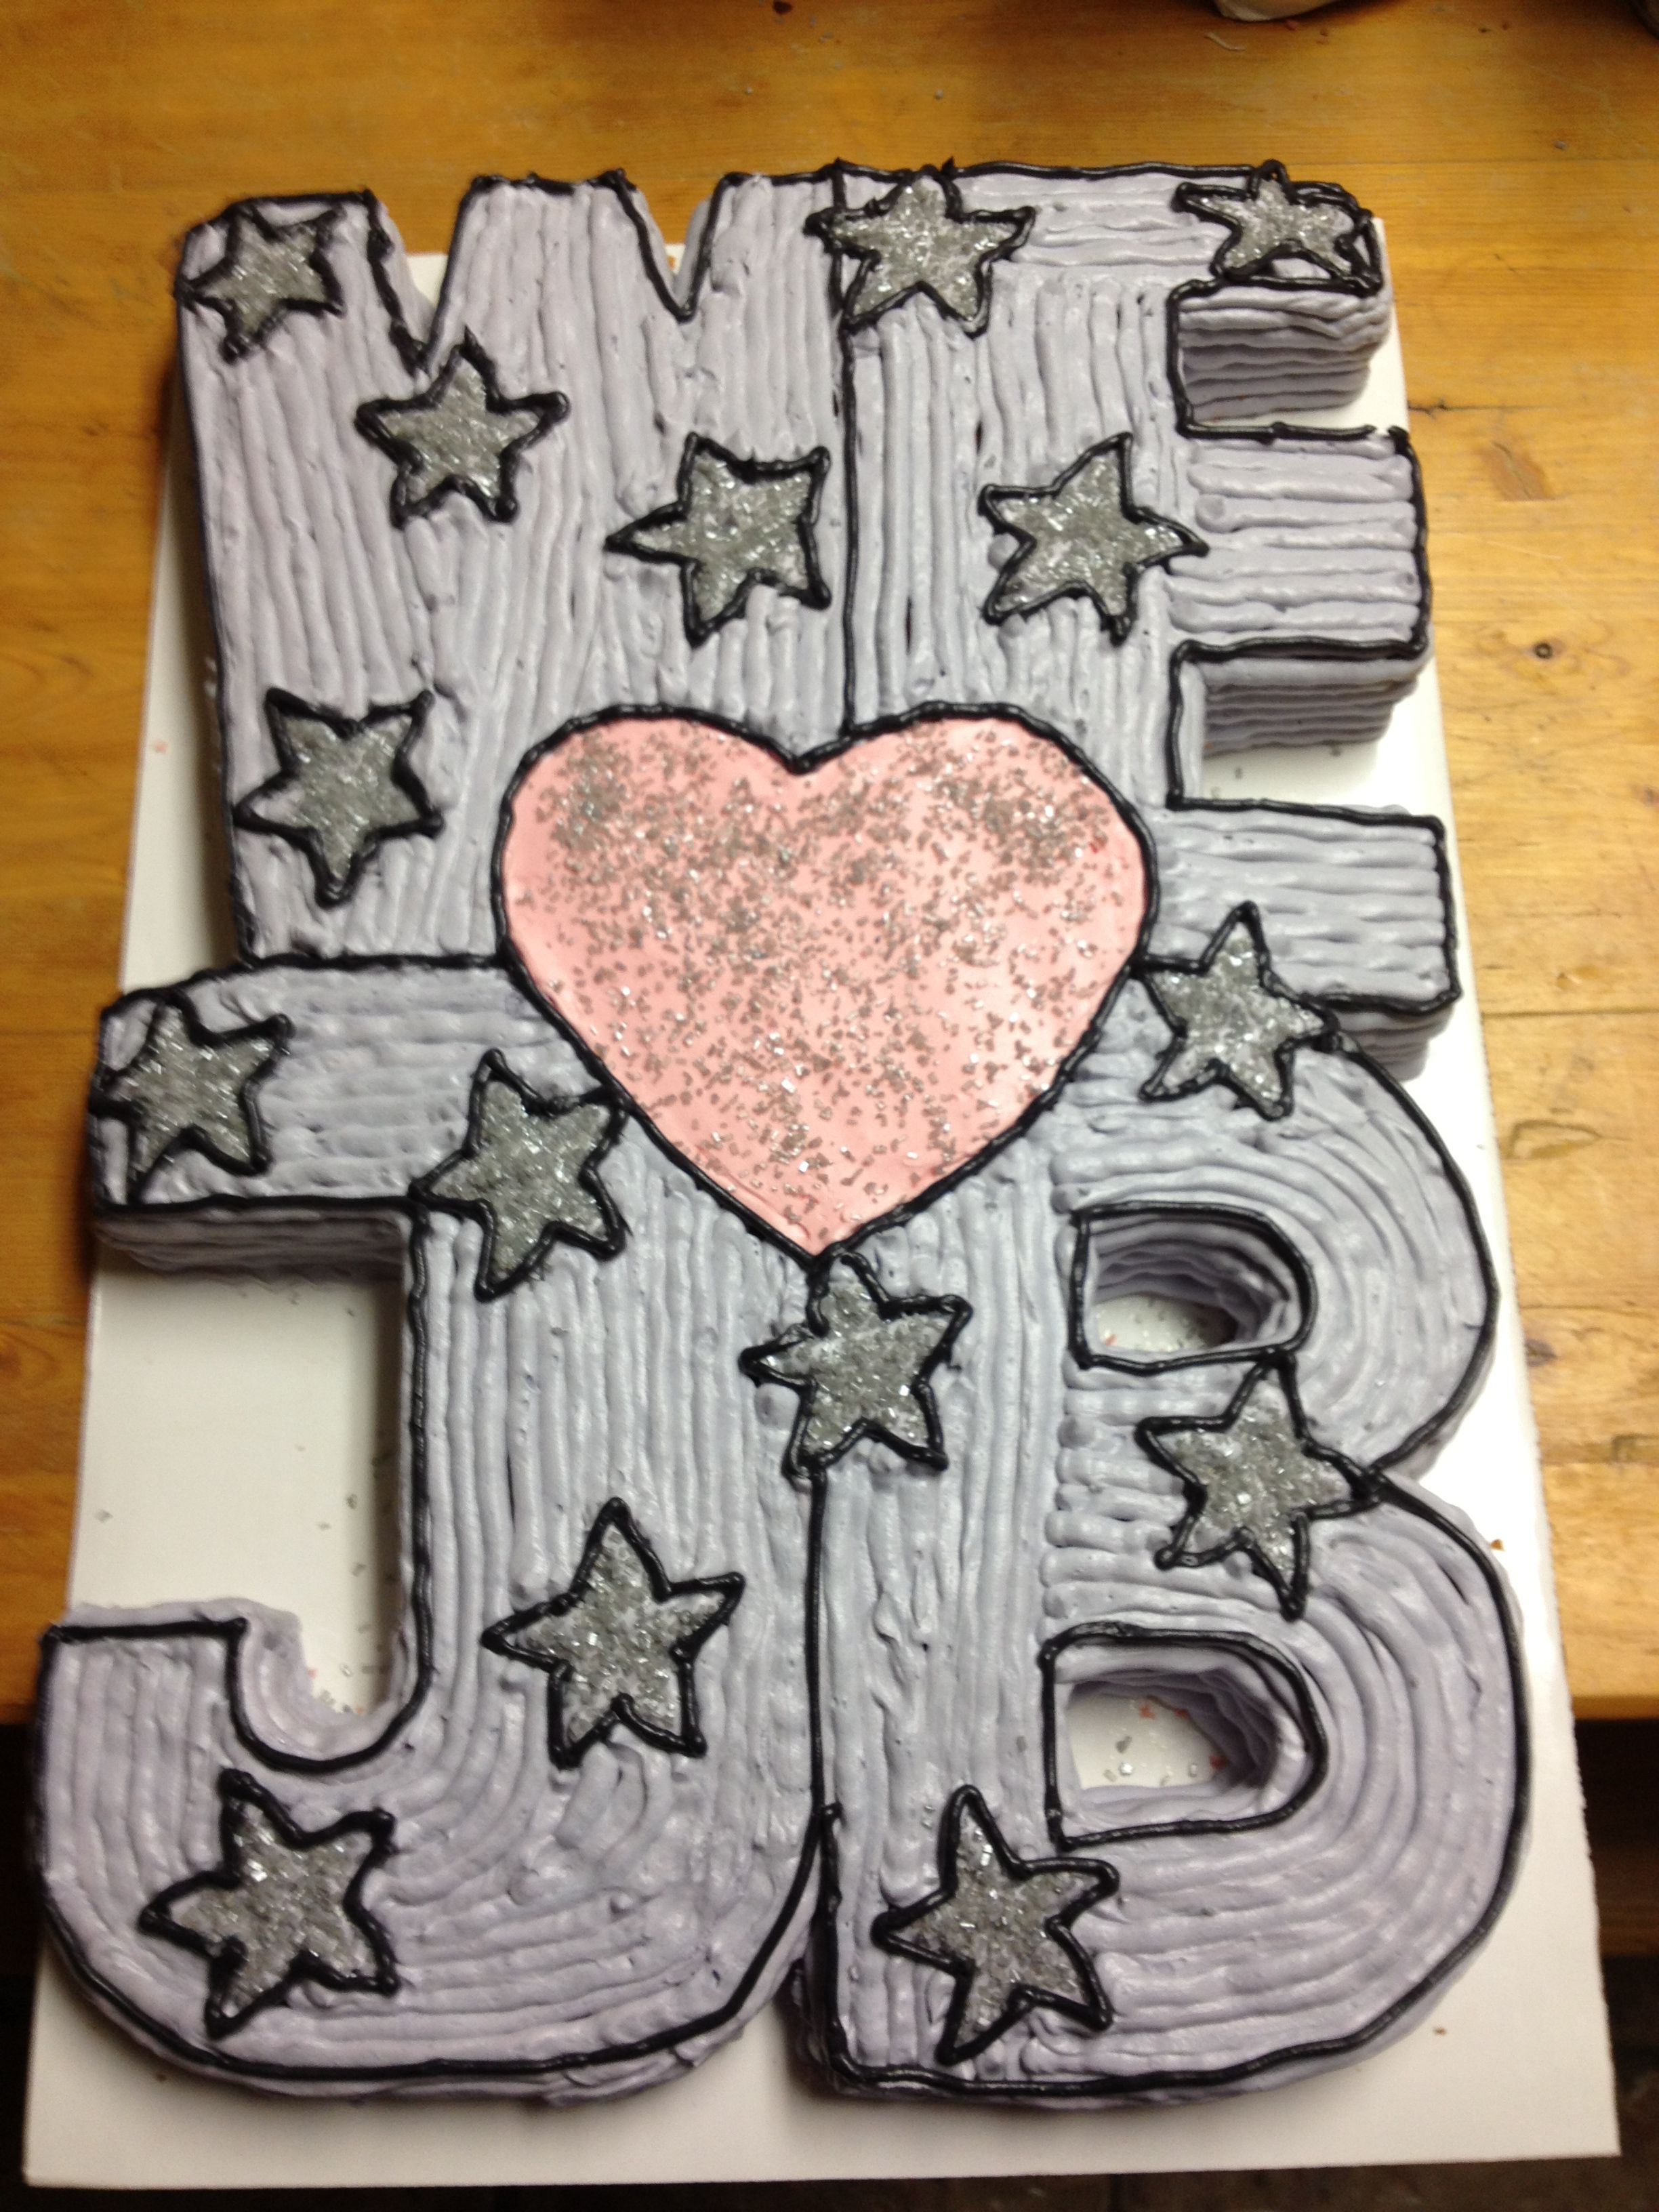 A Cake For Justin Bieber Birthday Party We Love Jb I Cut This